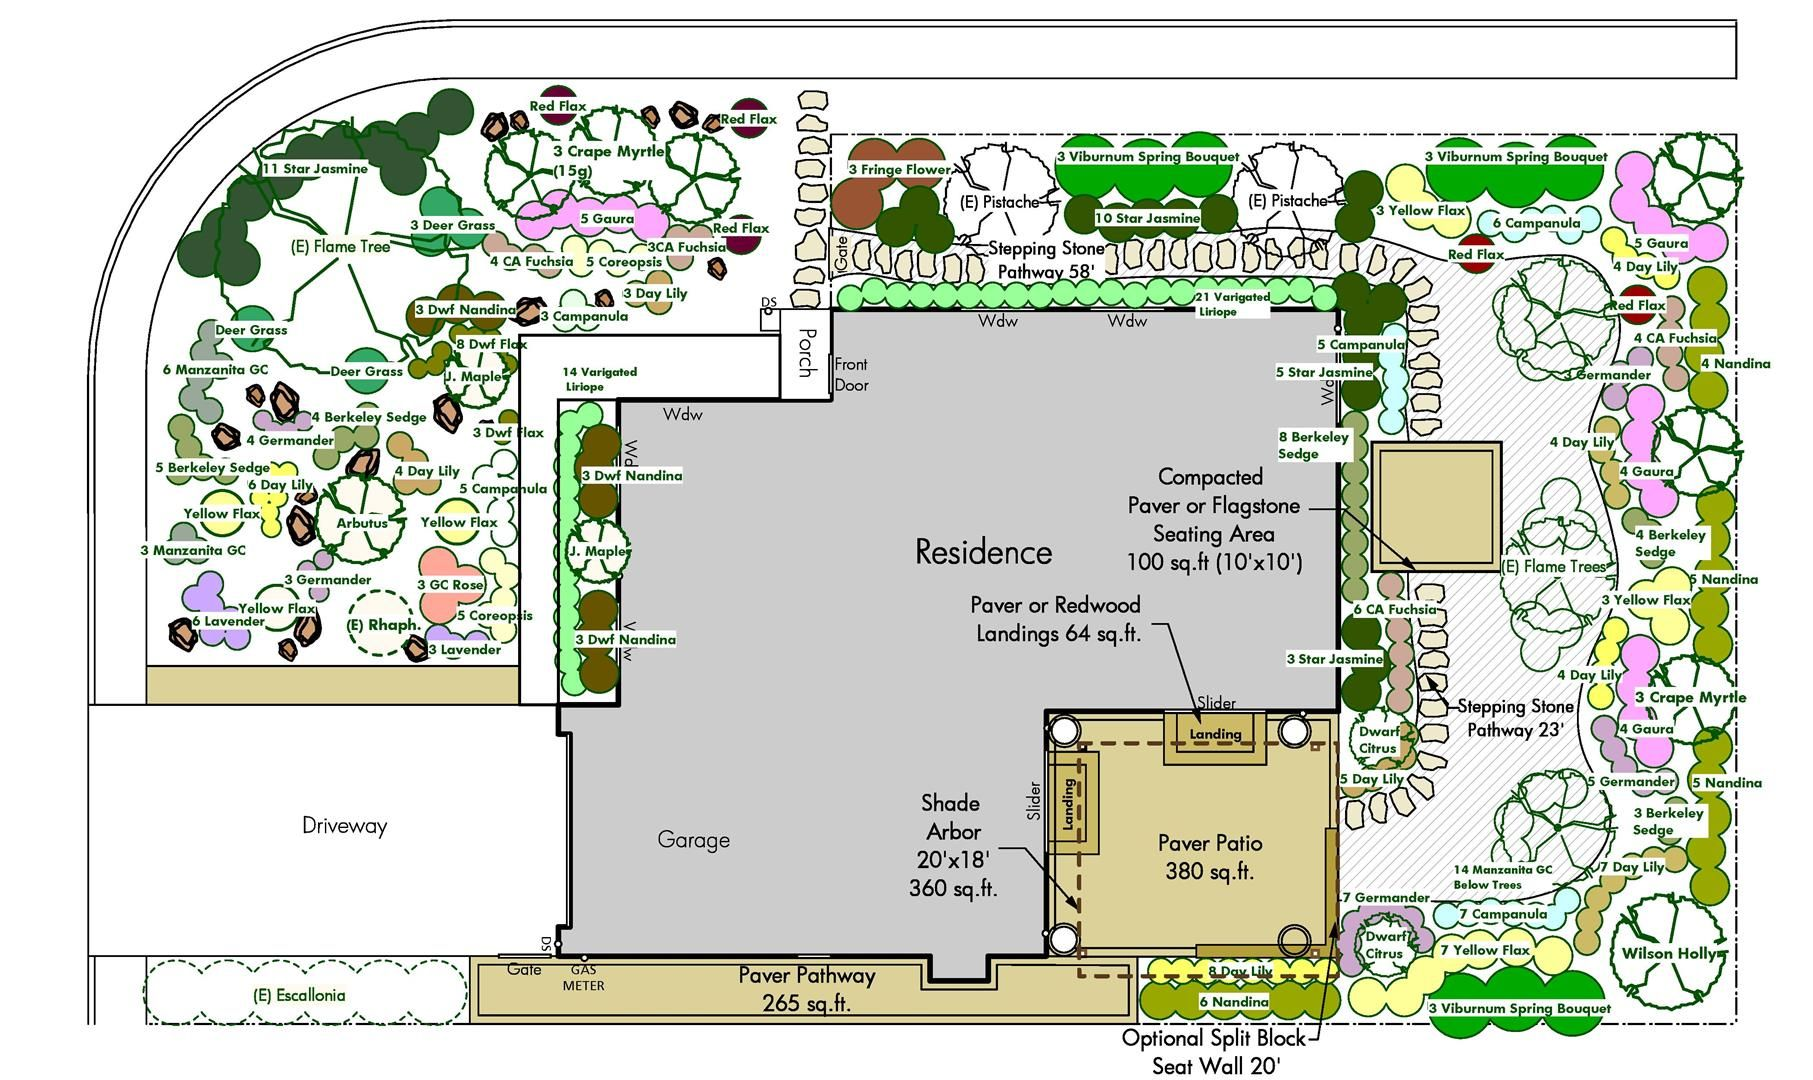 Very similar lot and house layout holy planting batman for Landscape arrangement